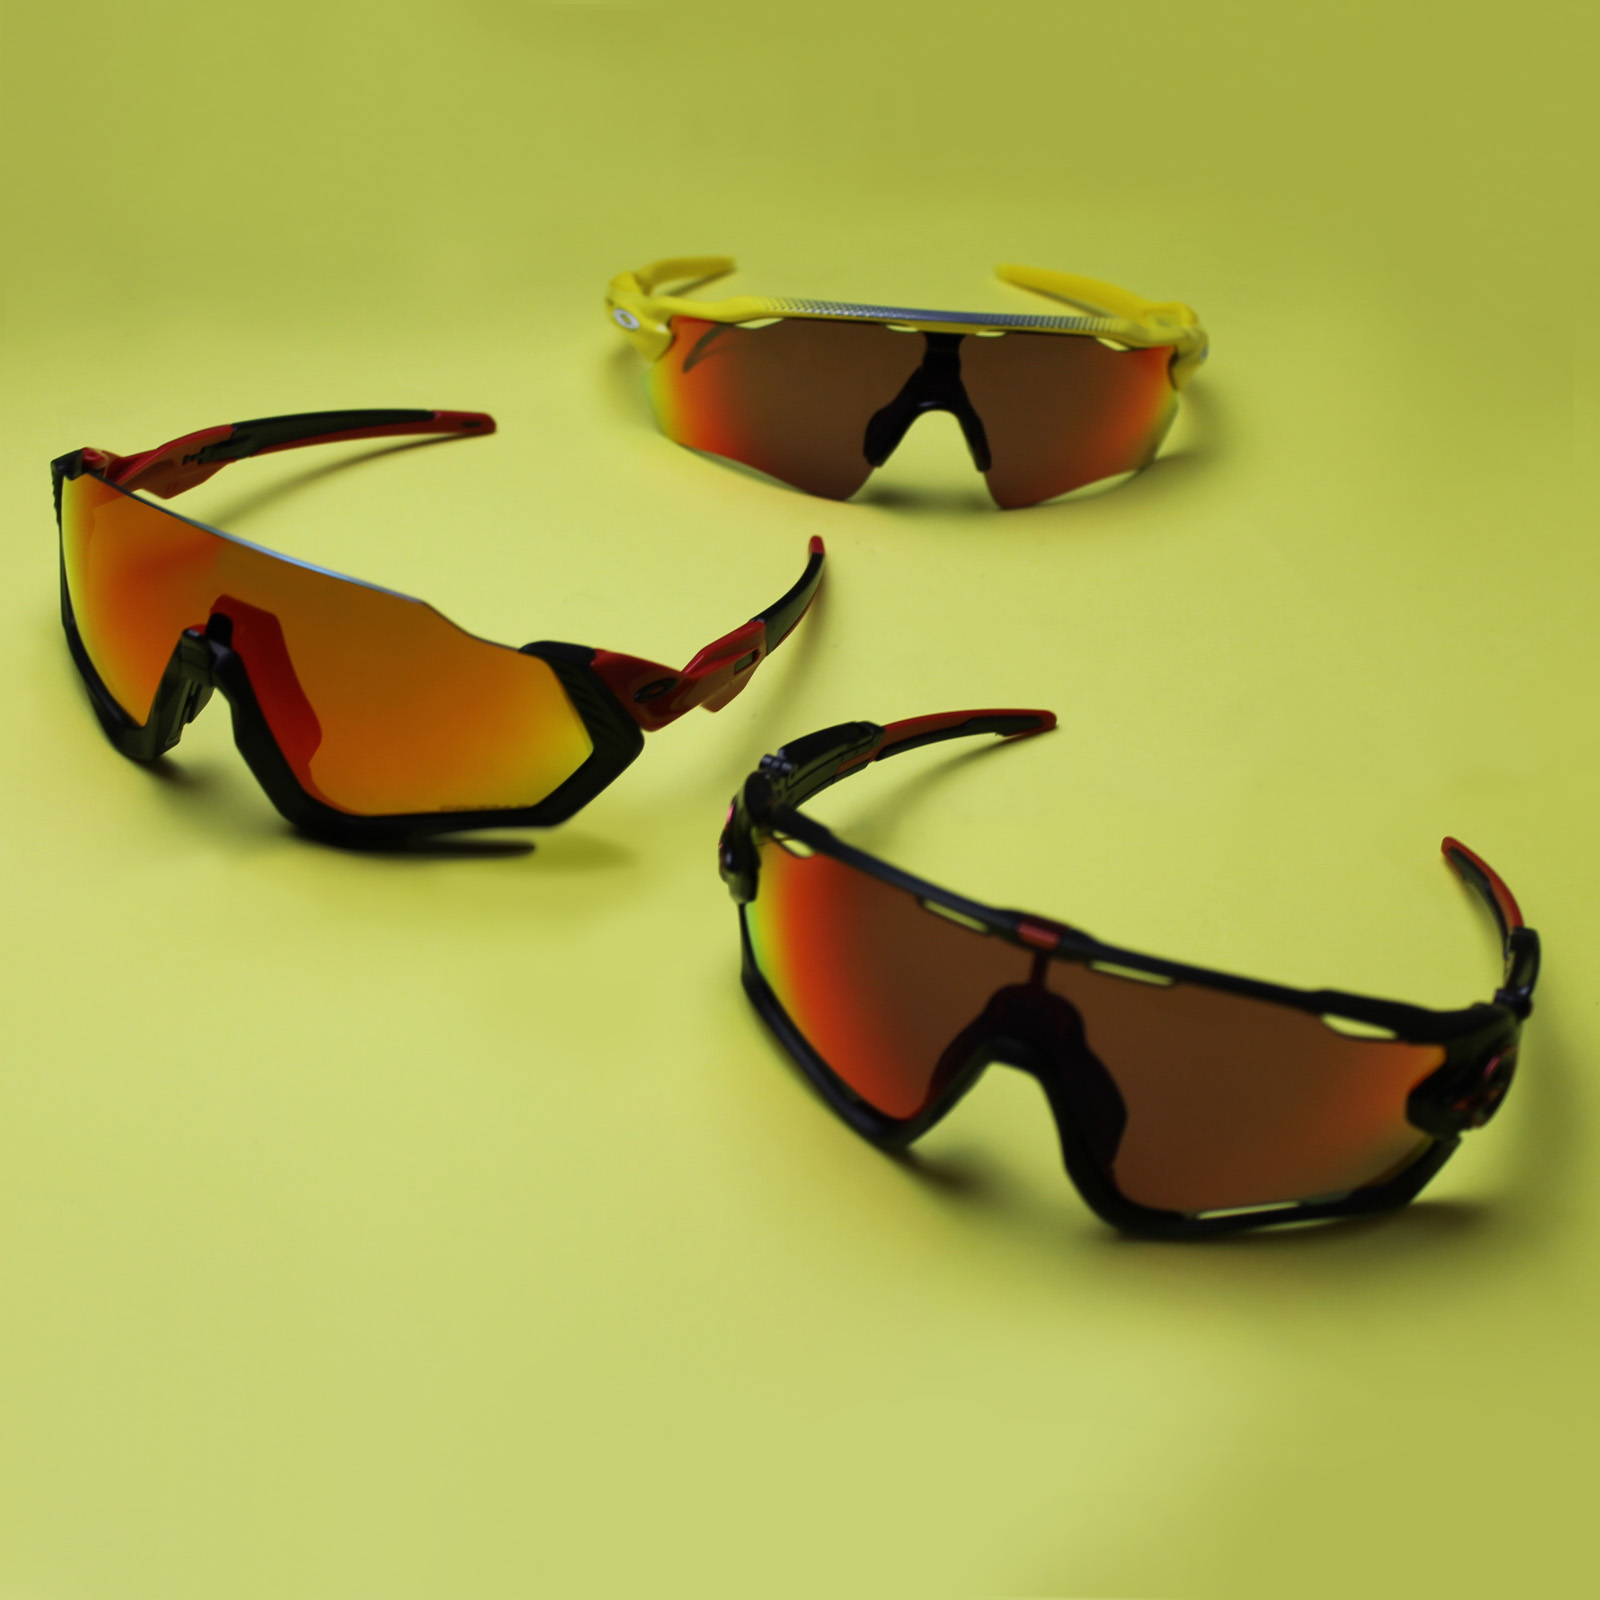 Oakley Sunglasses for Mountain Biking Lined up | EyeWearThese.com